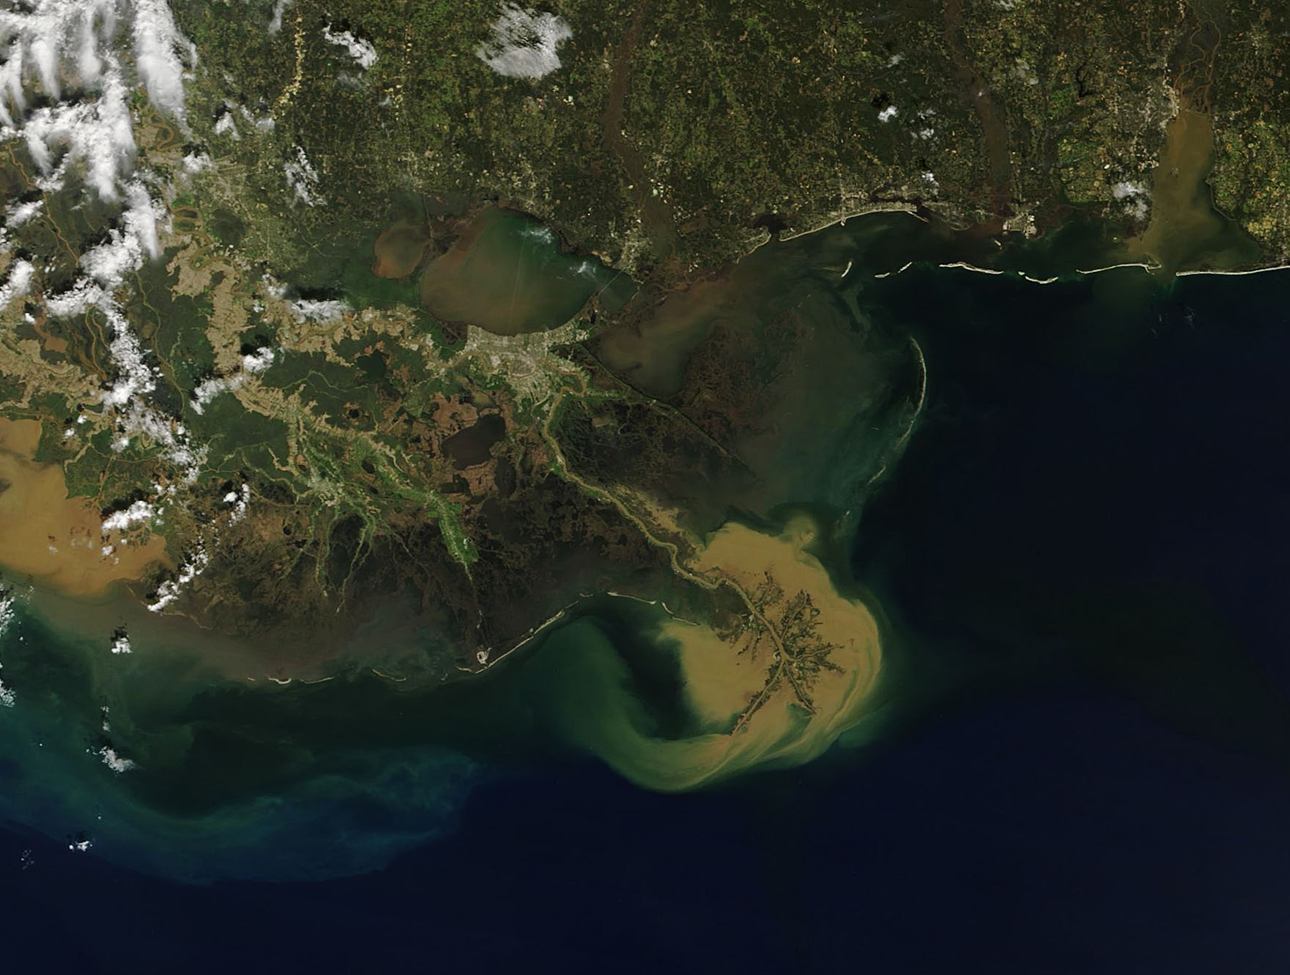 Satellite image shows sediment pouring out of the Mississippi River and into the Gulf after large storms and flooding in the central U.S. Credit: NASA